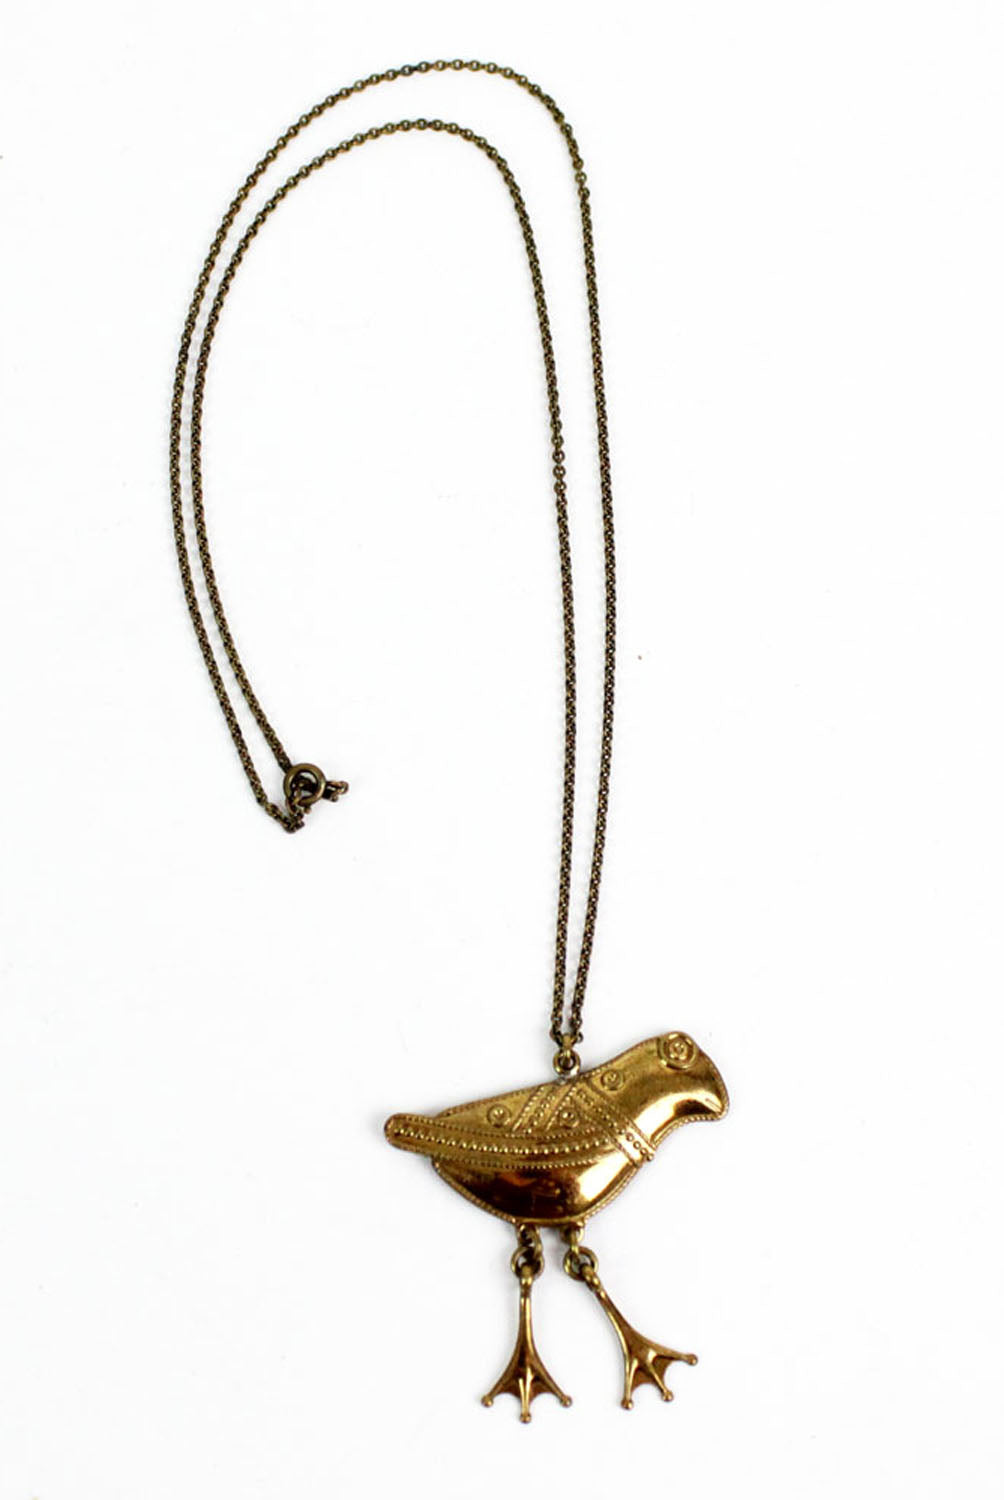 70s frog necklace